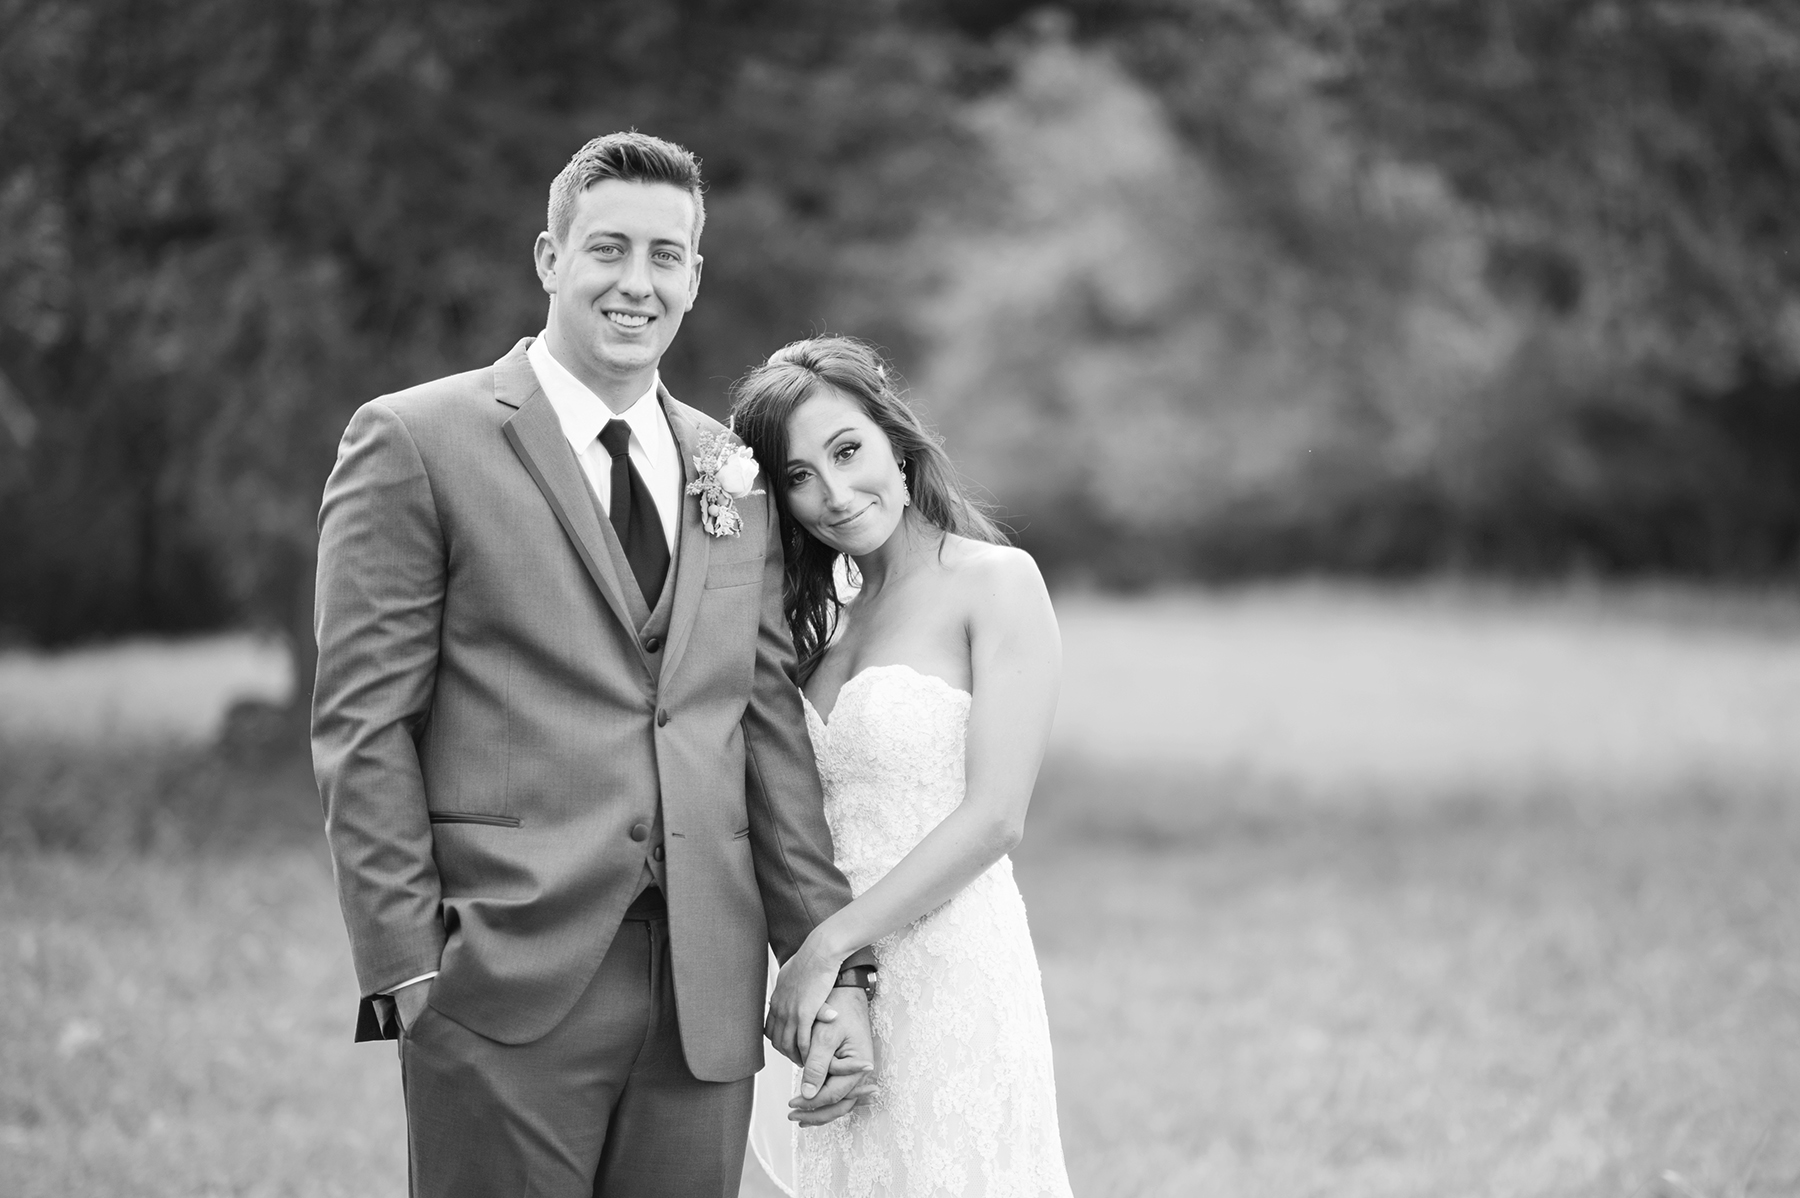 Ely Fair Photography | Oklahoma Wedding | Chisholm Springs